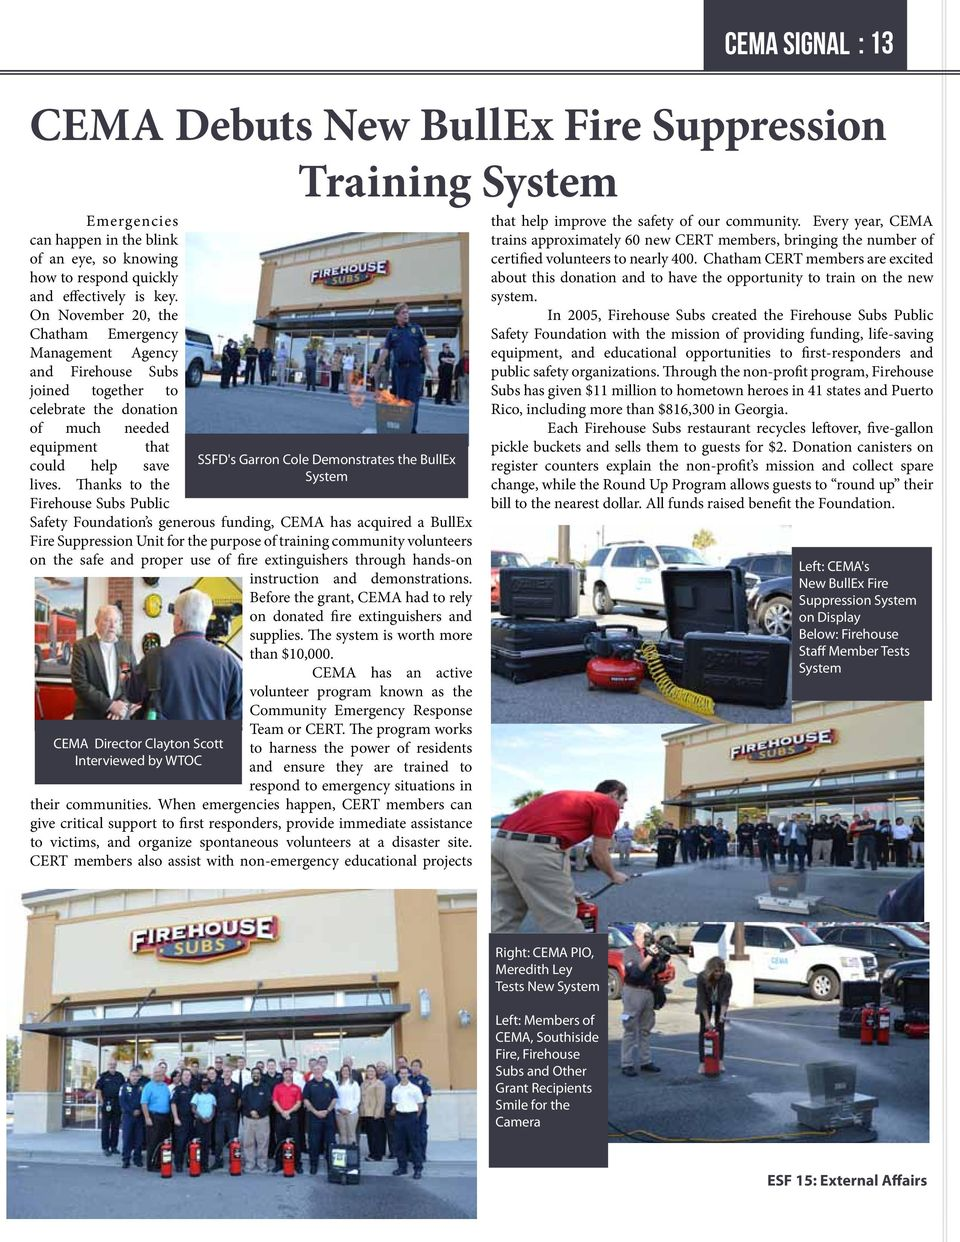 Thanks to the Firehouse Subs Public Safety Foundation s generous funding, CEMA has acquired a BullEx Fire Suppression Unit for the purpose of training community volunteers on the safe and proper use